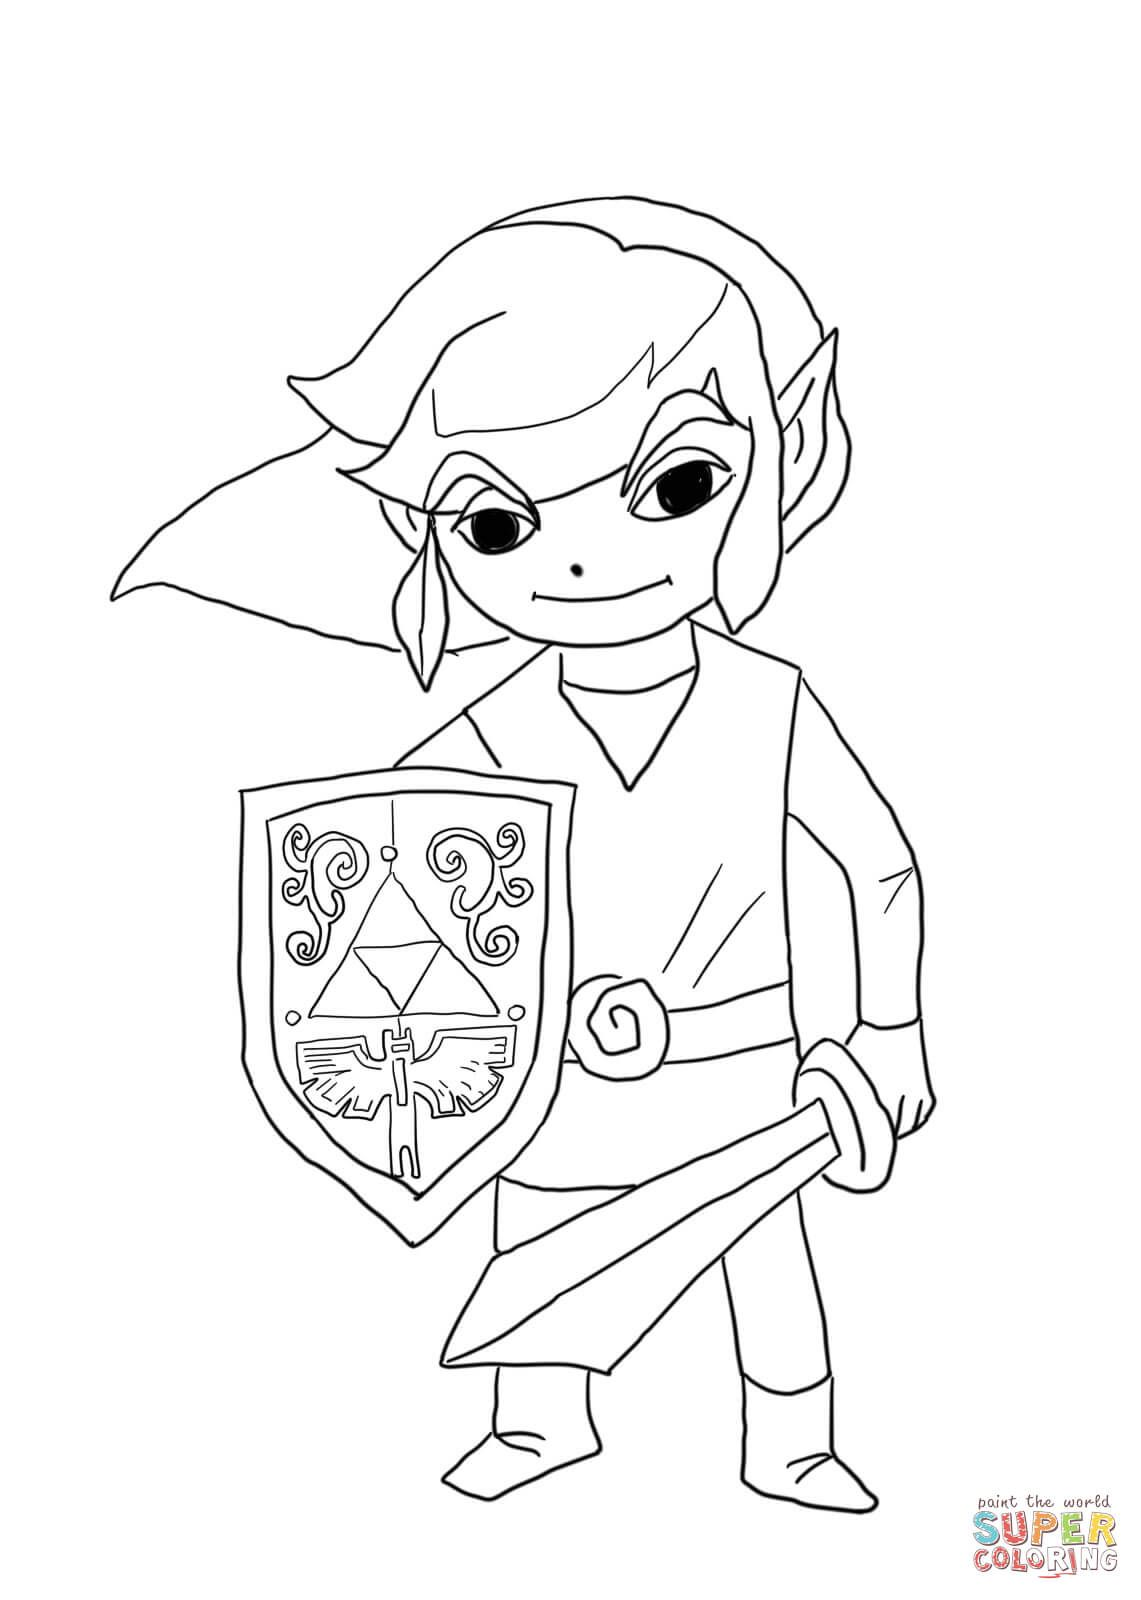 Toon Link from Legend of Zelda Wind Waker coloring page